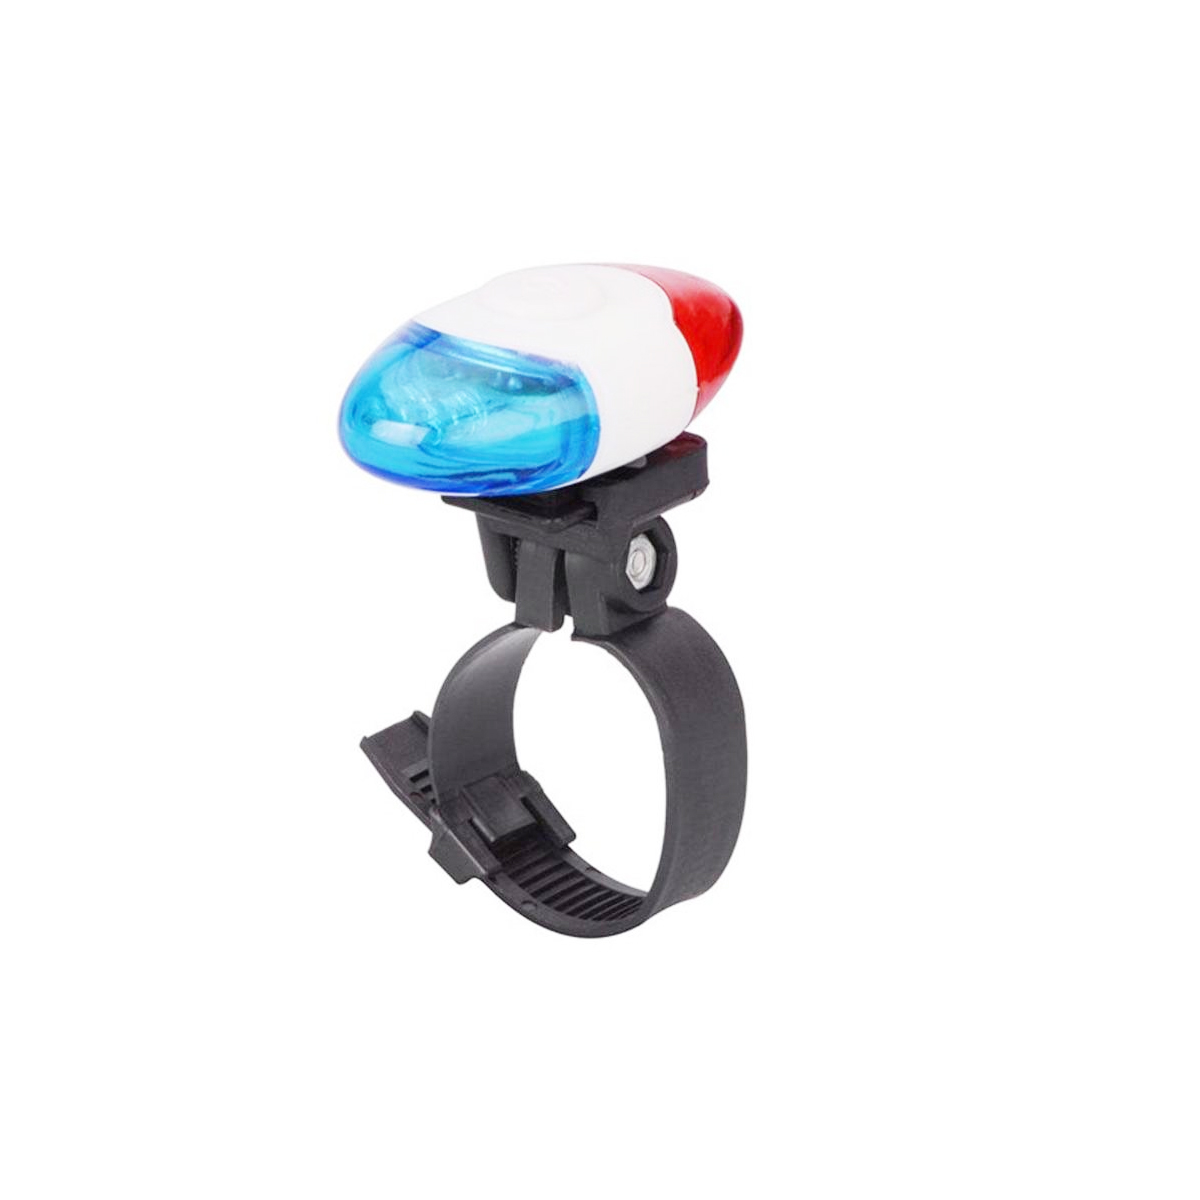 IAG-Flashing-Police-Bike-Safety-Light -2-1200×1200